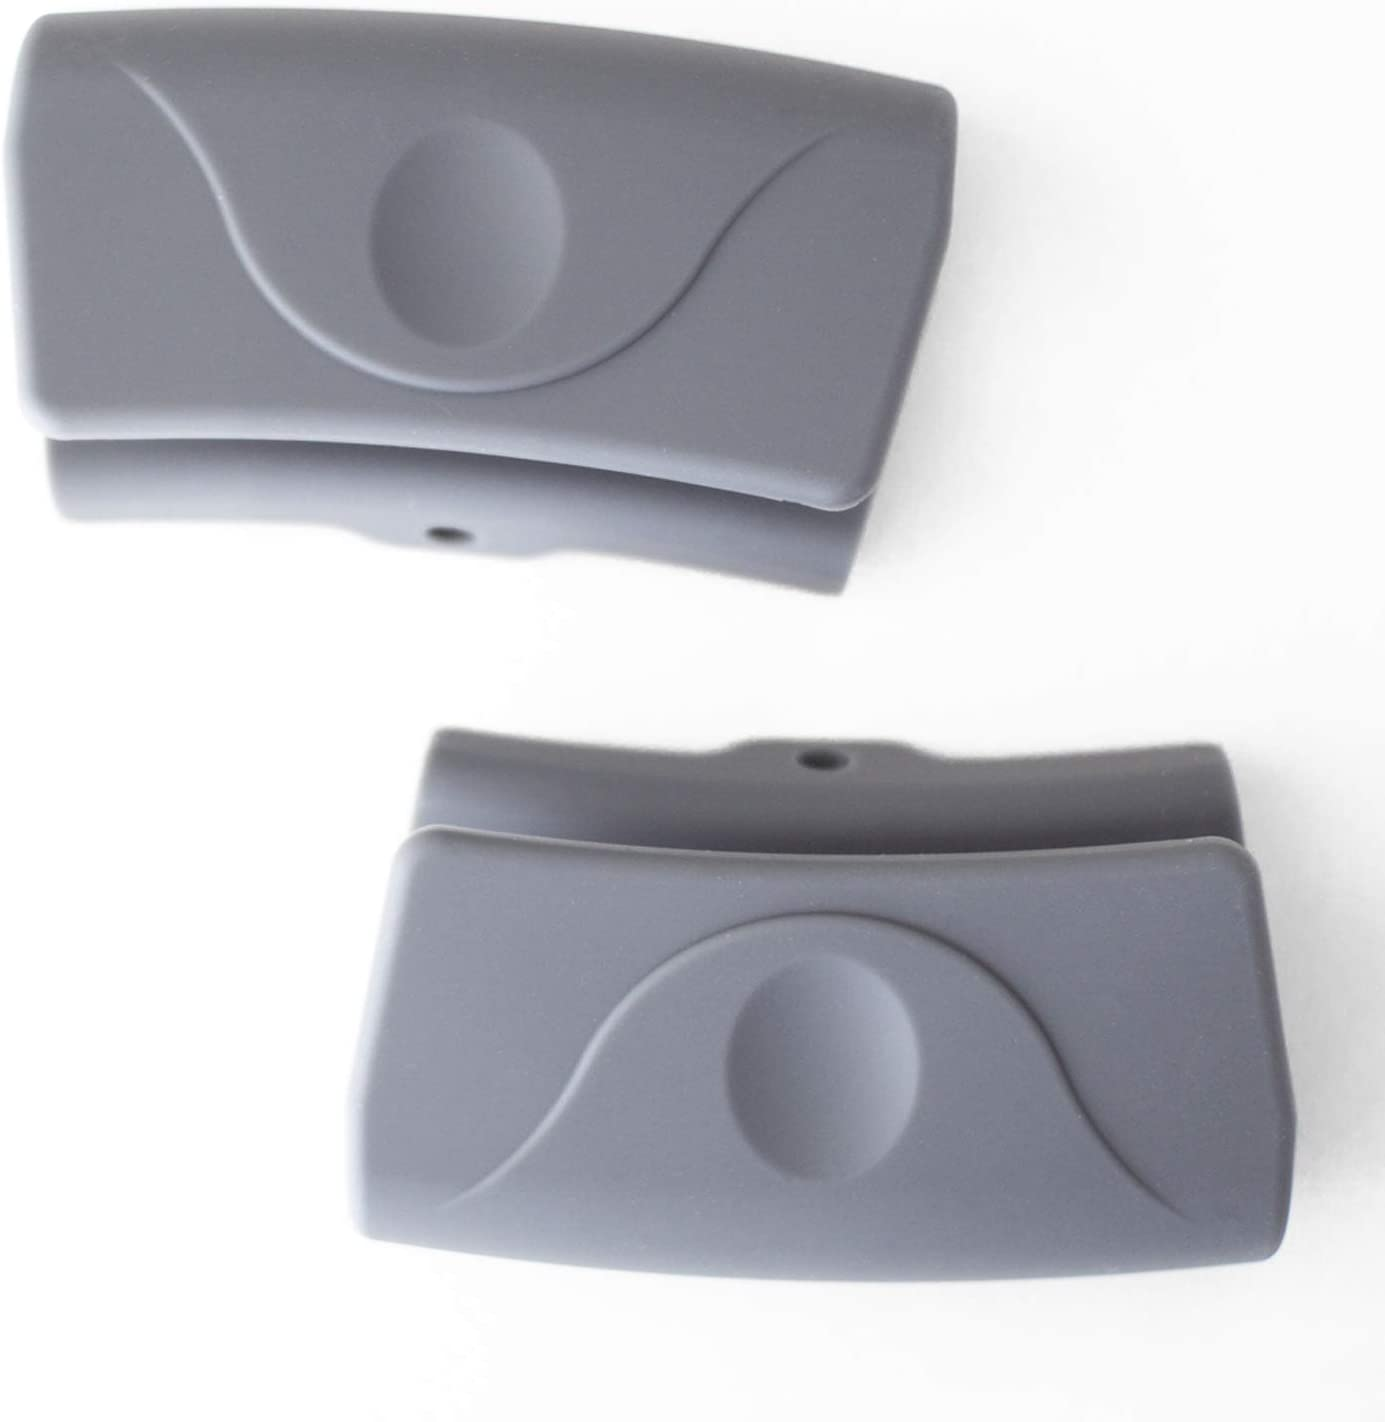 New product! New type Carrotez Silicone Pot Holders 2pcs Hot Popular brand Holder Handle